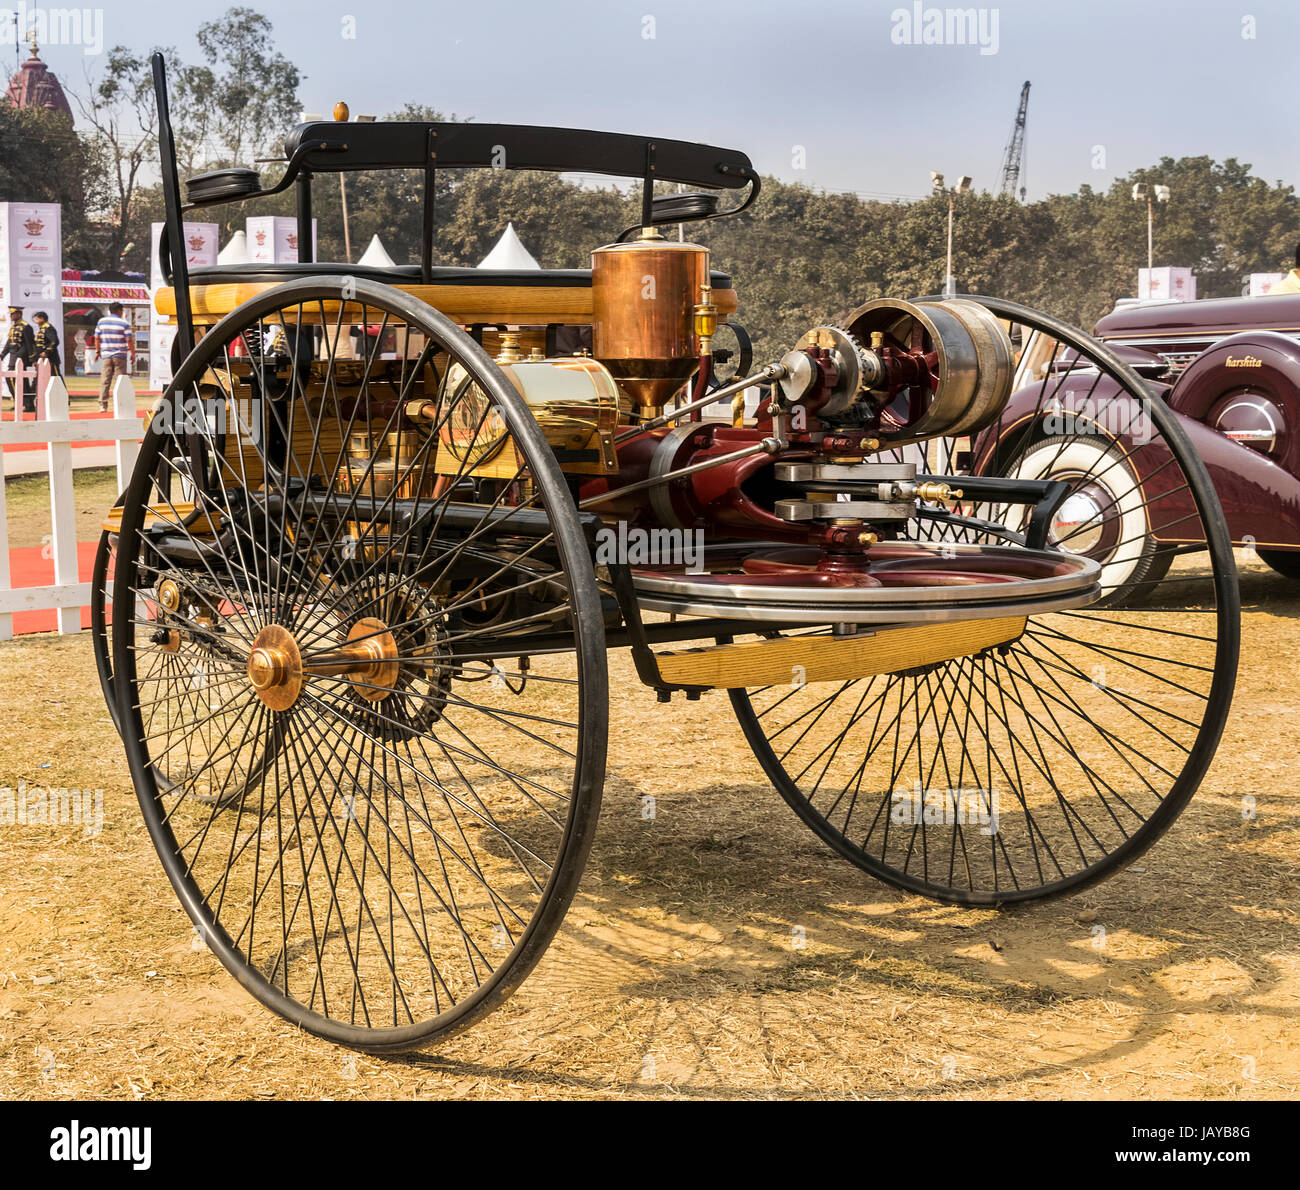 New Delhi, India - February 6, 2016: Rear view of Benz Patent Motorwagen (or motorcar) 1886 worlds first petrol - Stock Image